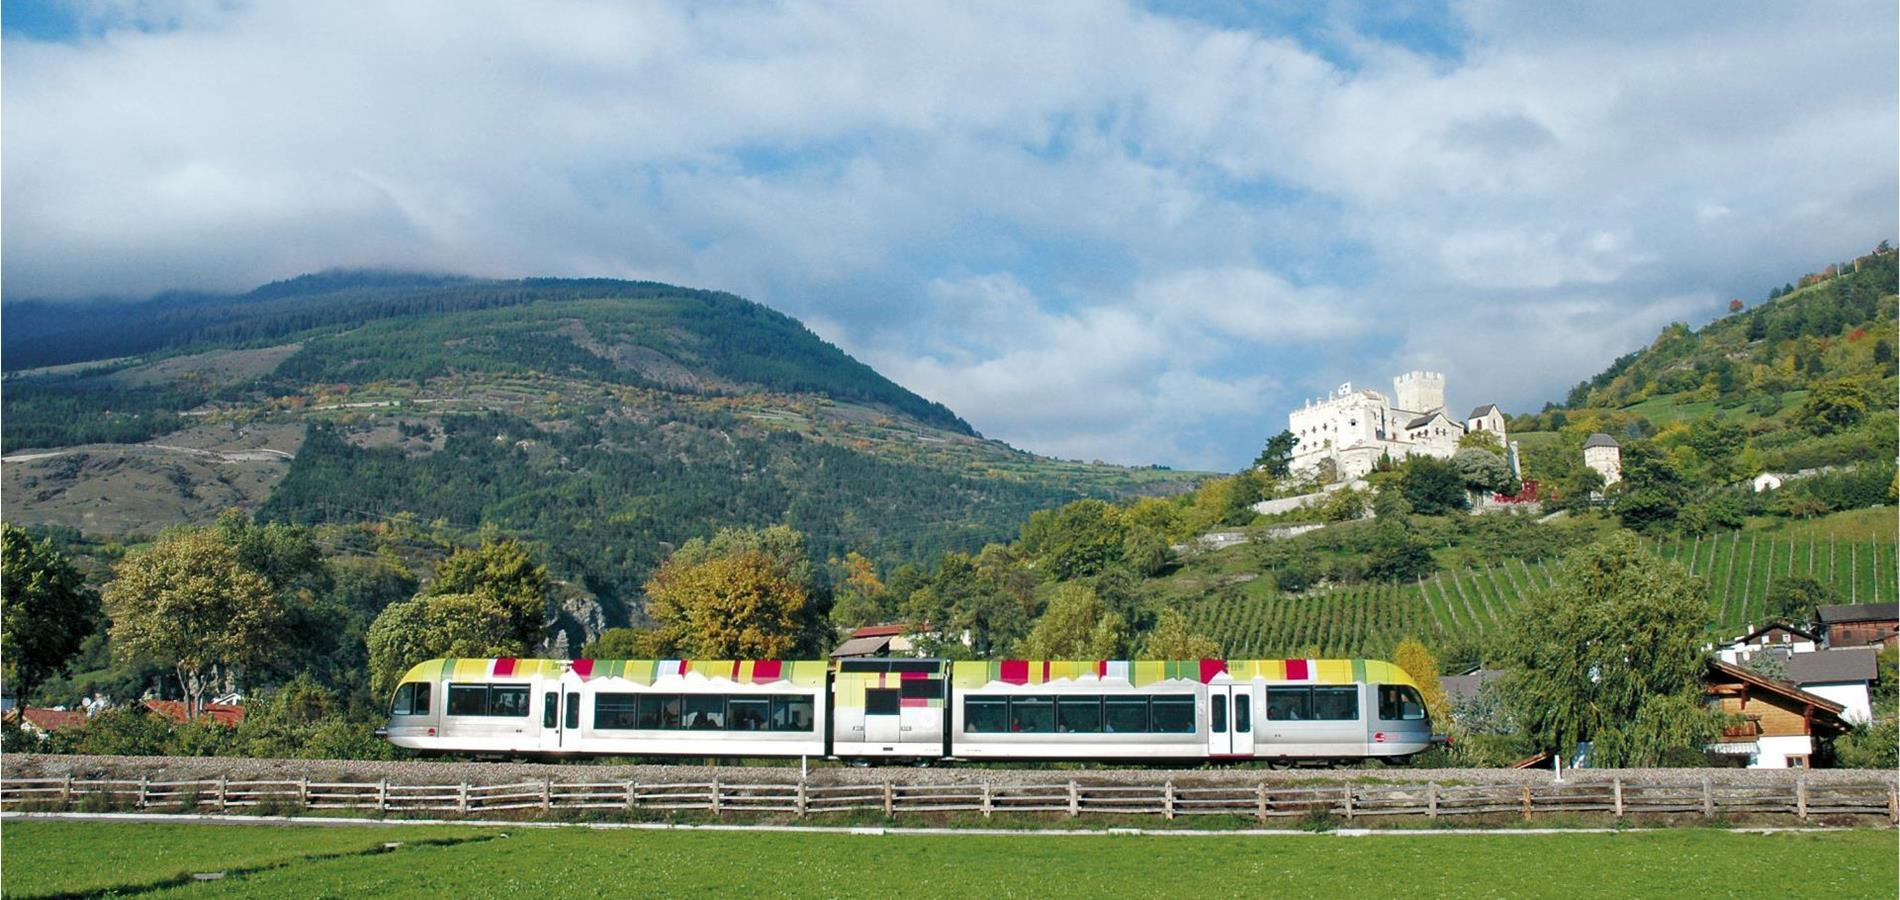 Public Transport in Merano